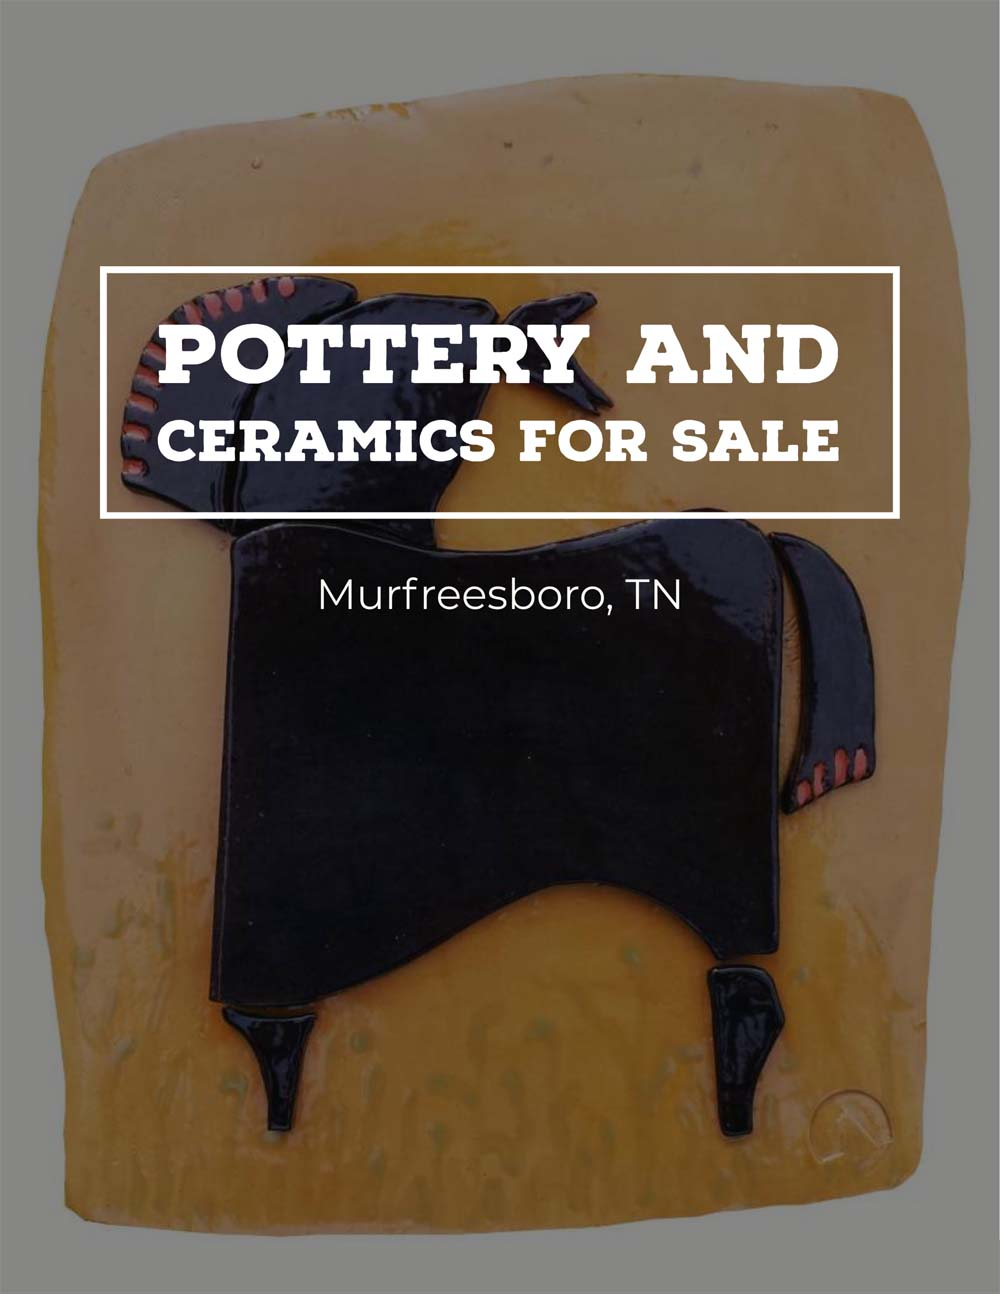 Pottery and ceramics for sale in Murfreesboro